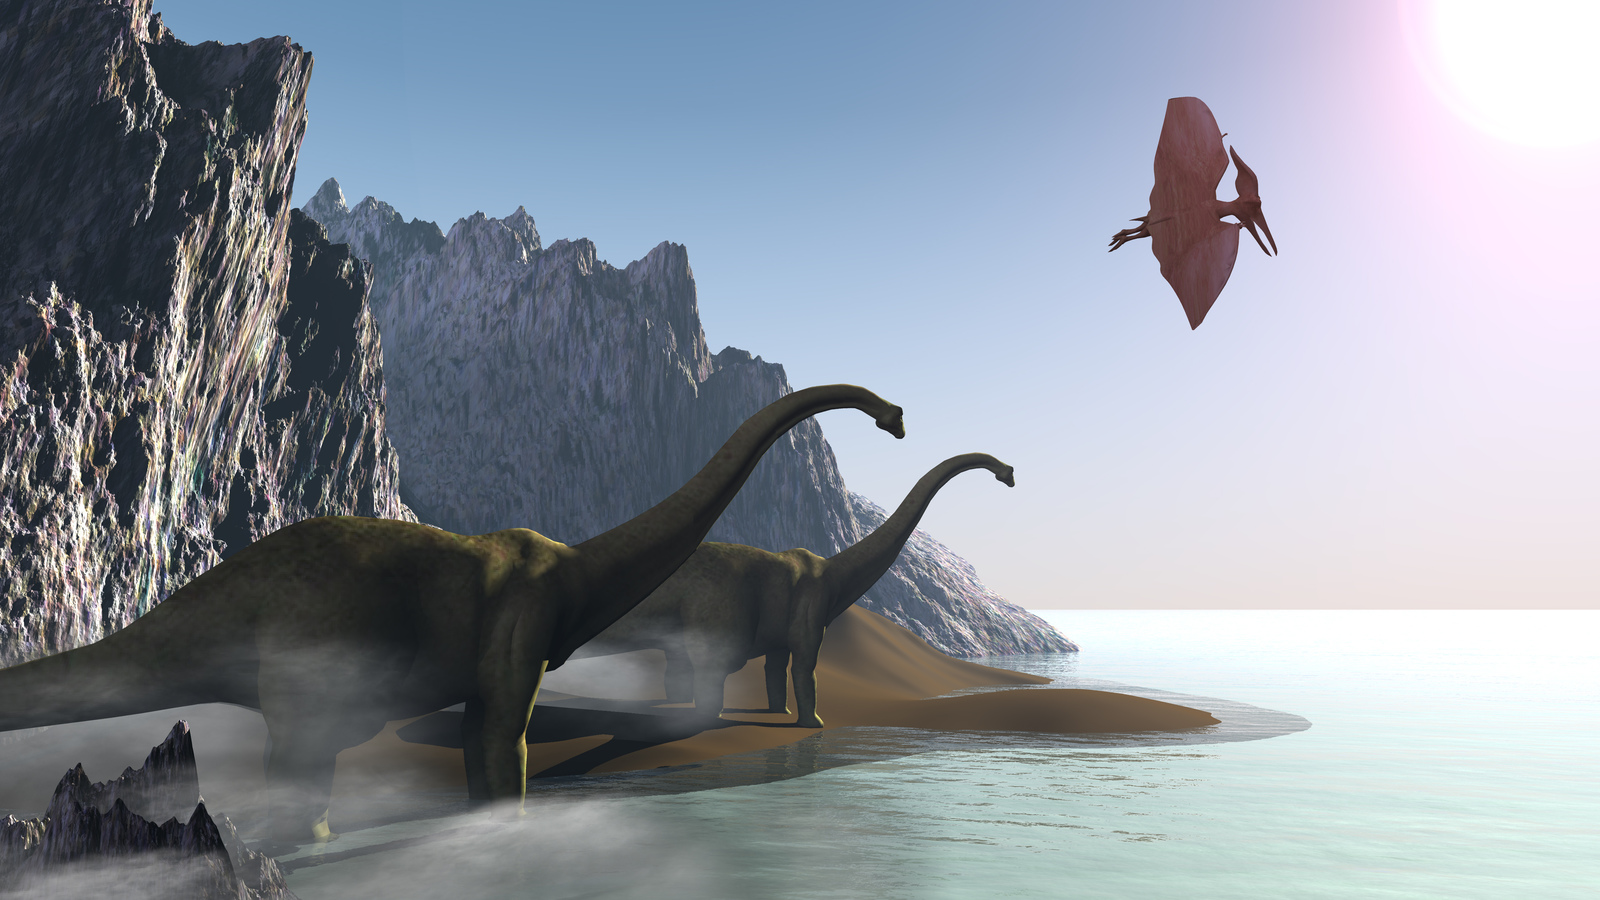 dinosaur extinction asteroid theory essay It suggests that the dinosaur extinction coincided with at the same time as the species extinction than the asteroid impact theory plagiarism essay.